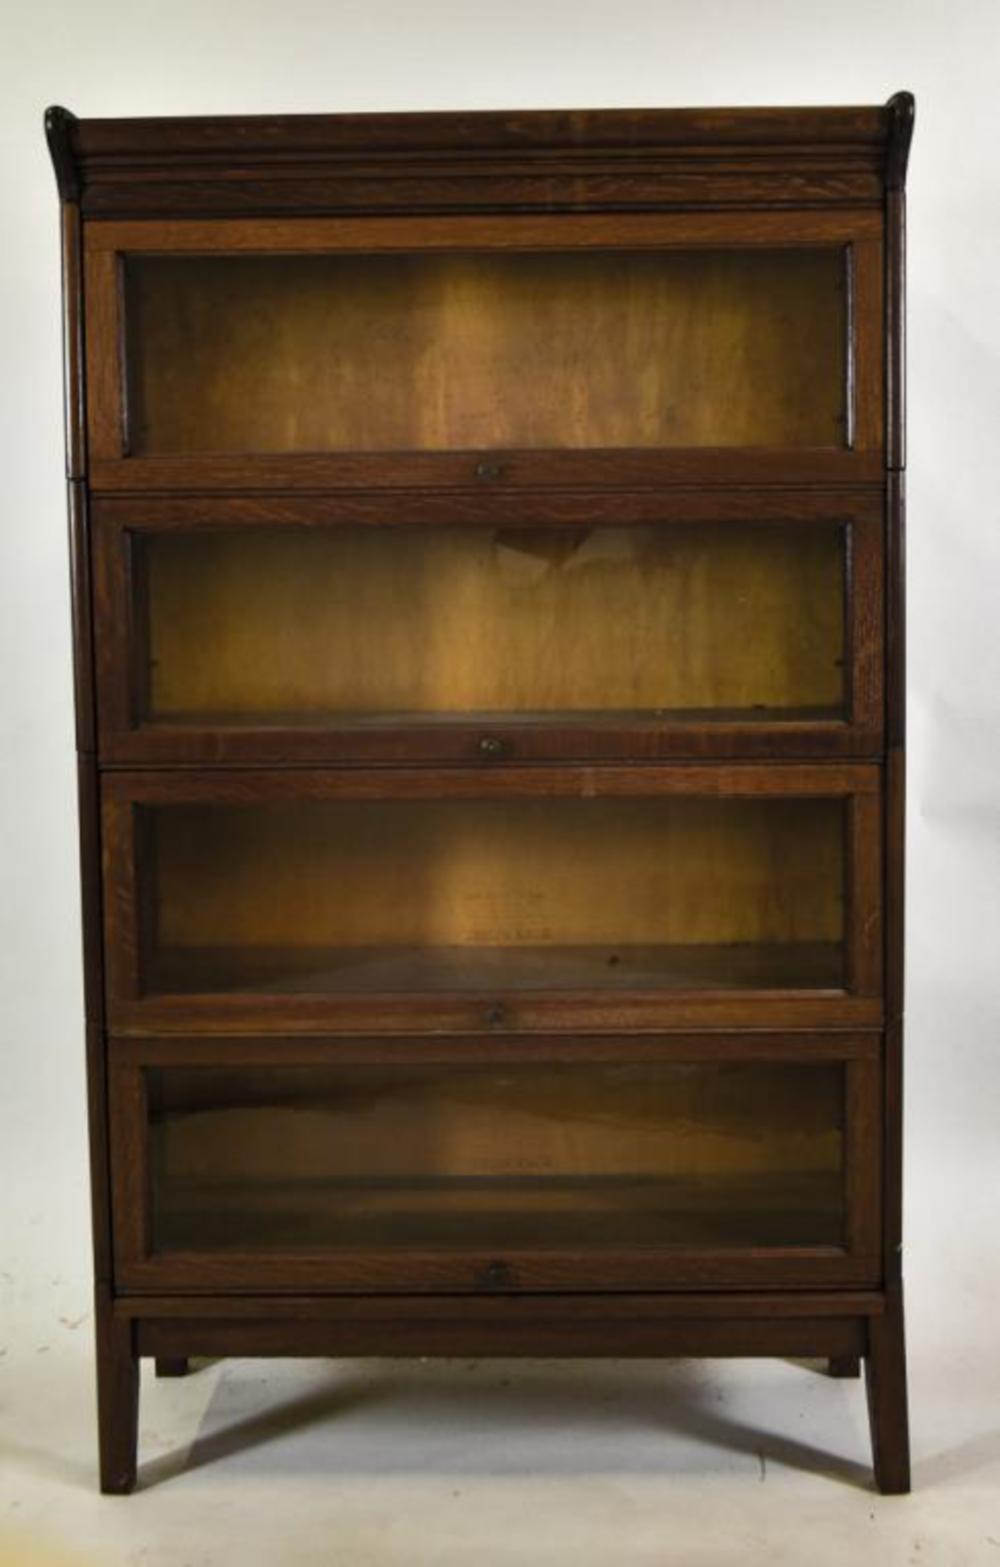 Gunn Sectional 4 Stack Barrister Bookcase